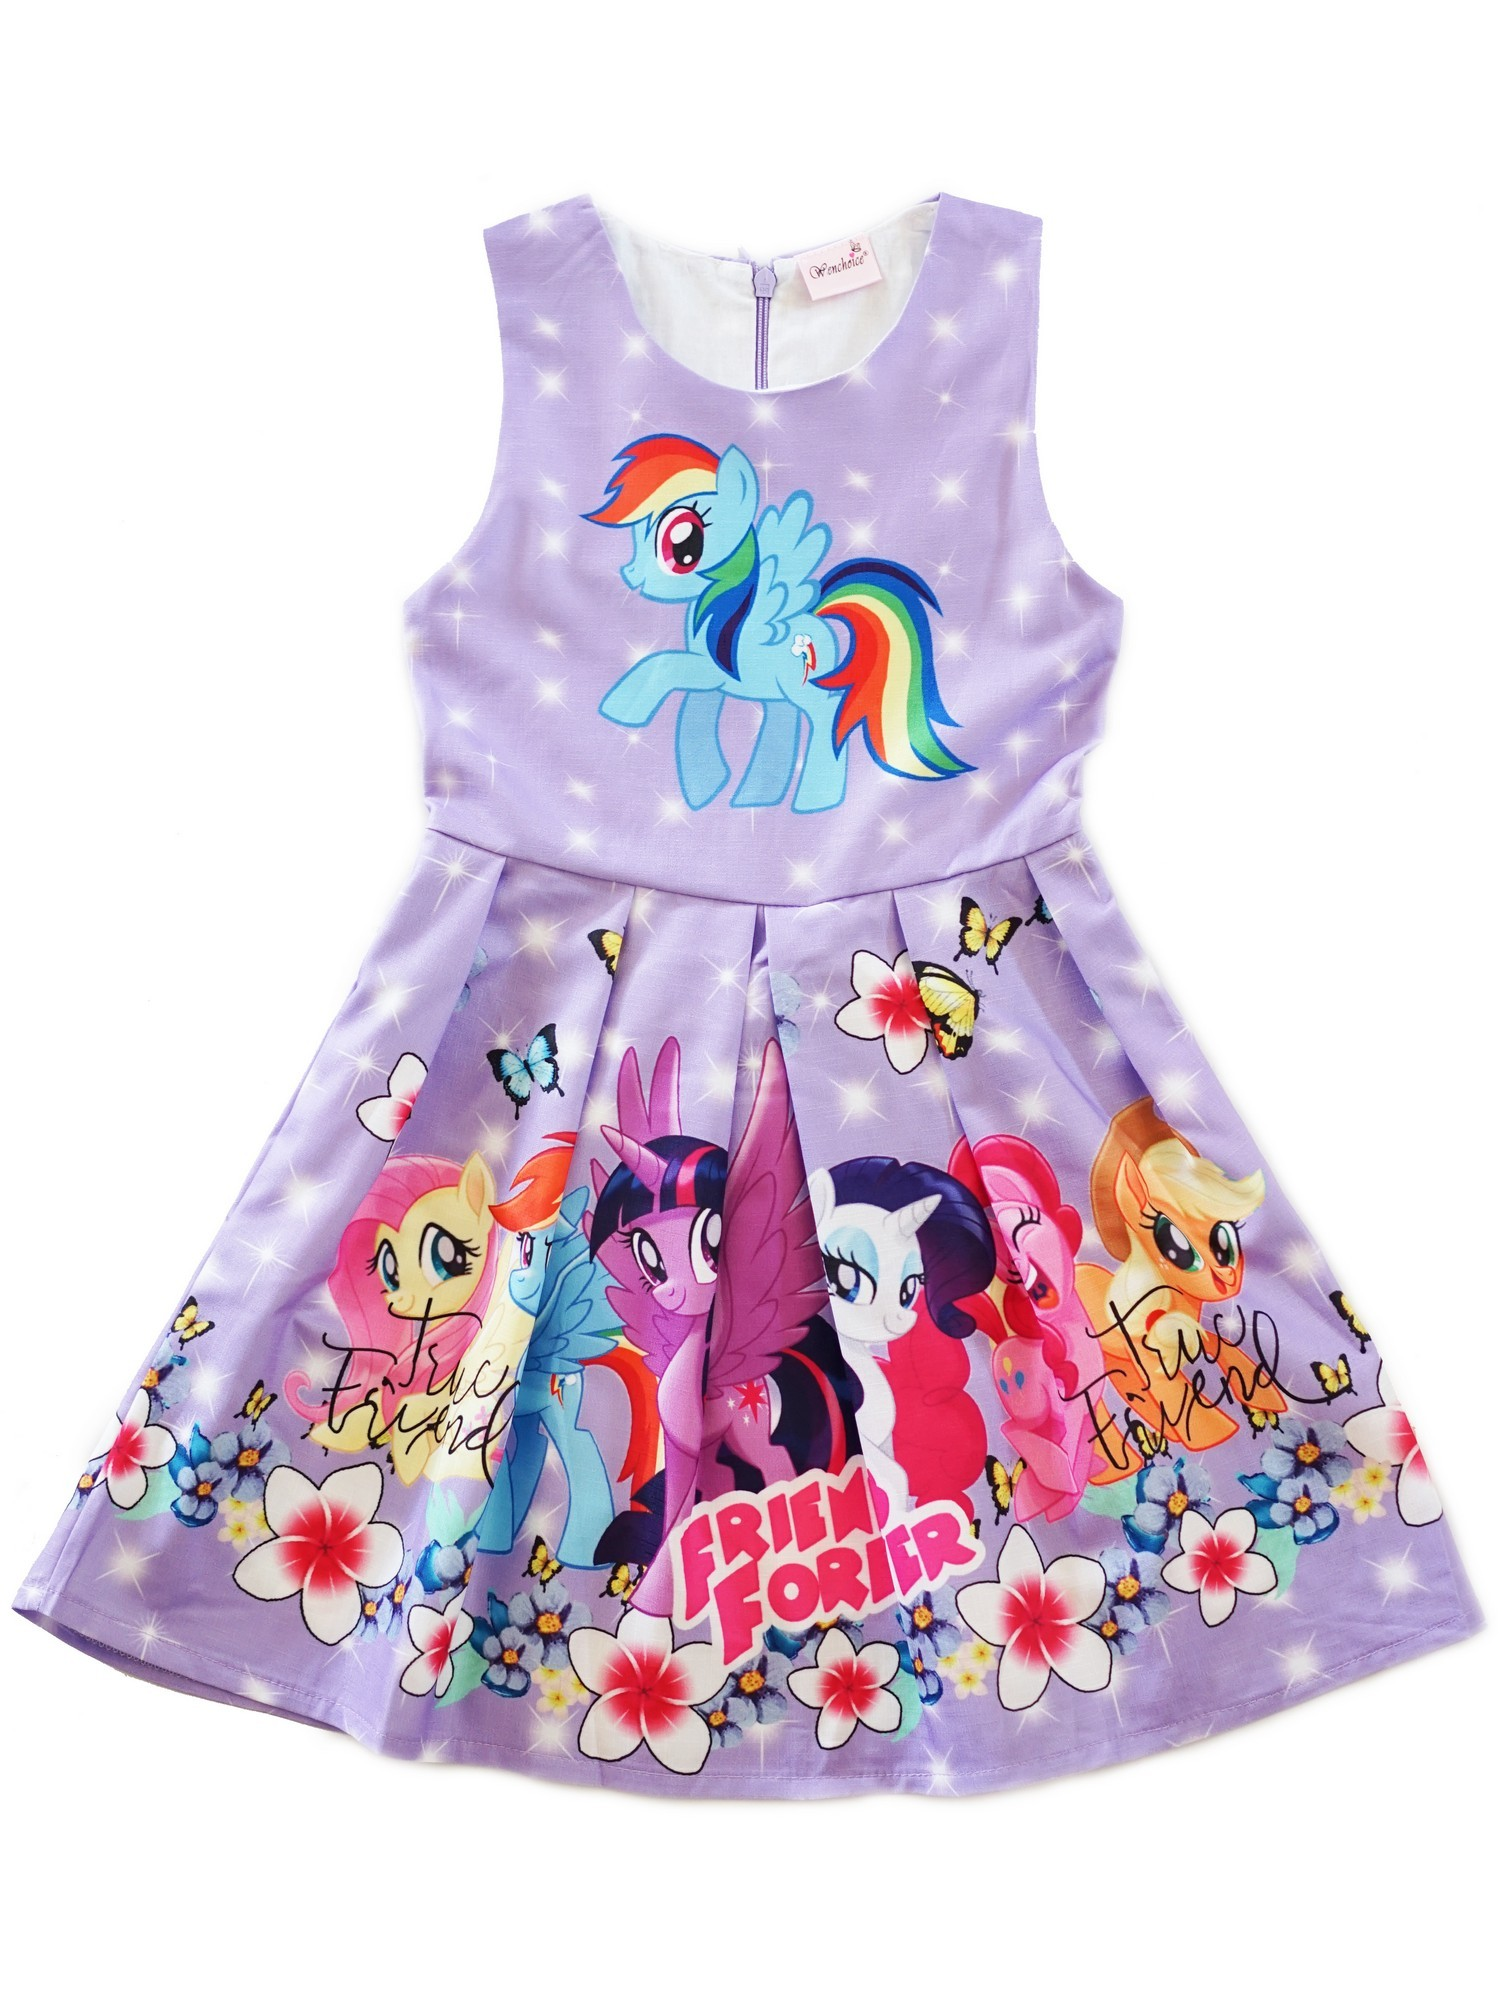 Wenchoice Girls Lavender My Little Pony Friends Forever A-Line Dress